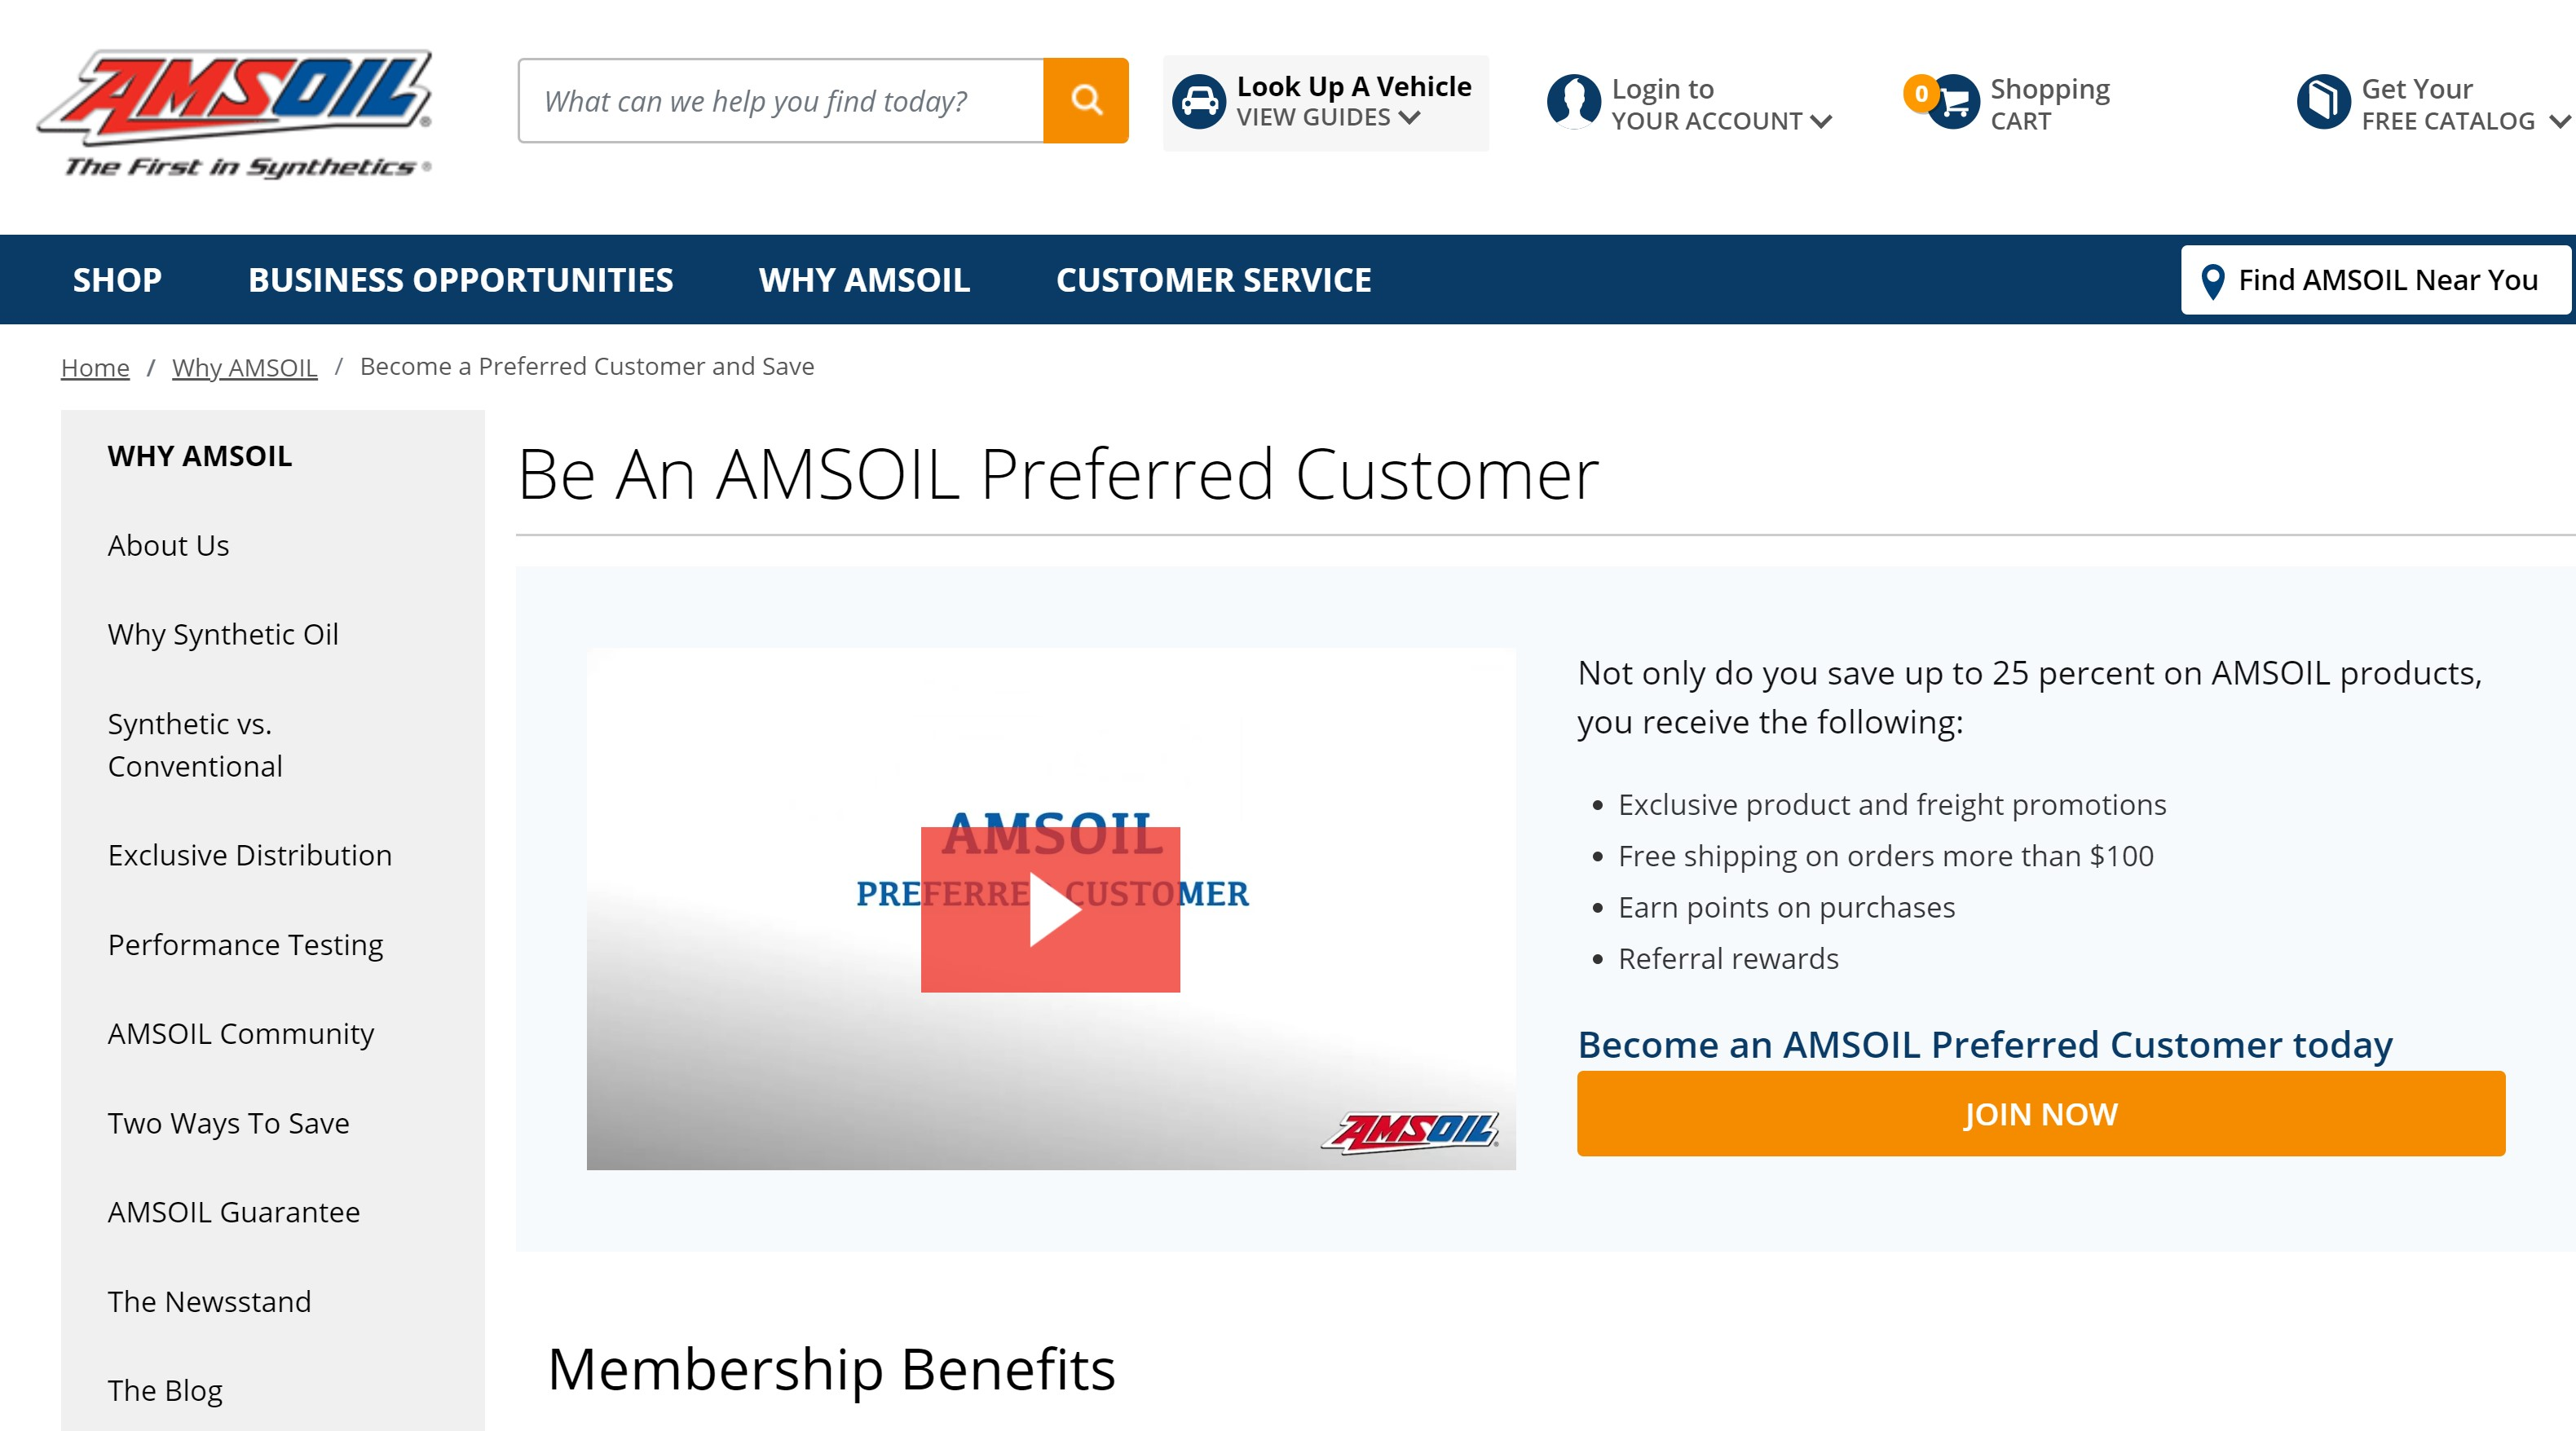 25% - 30% Off AMSOIL + FREE Shipping + Free Mailed AMSOIL Magazine